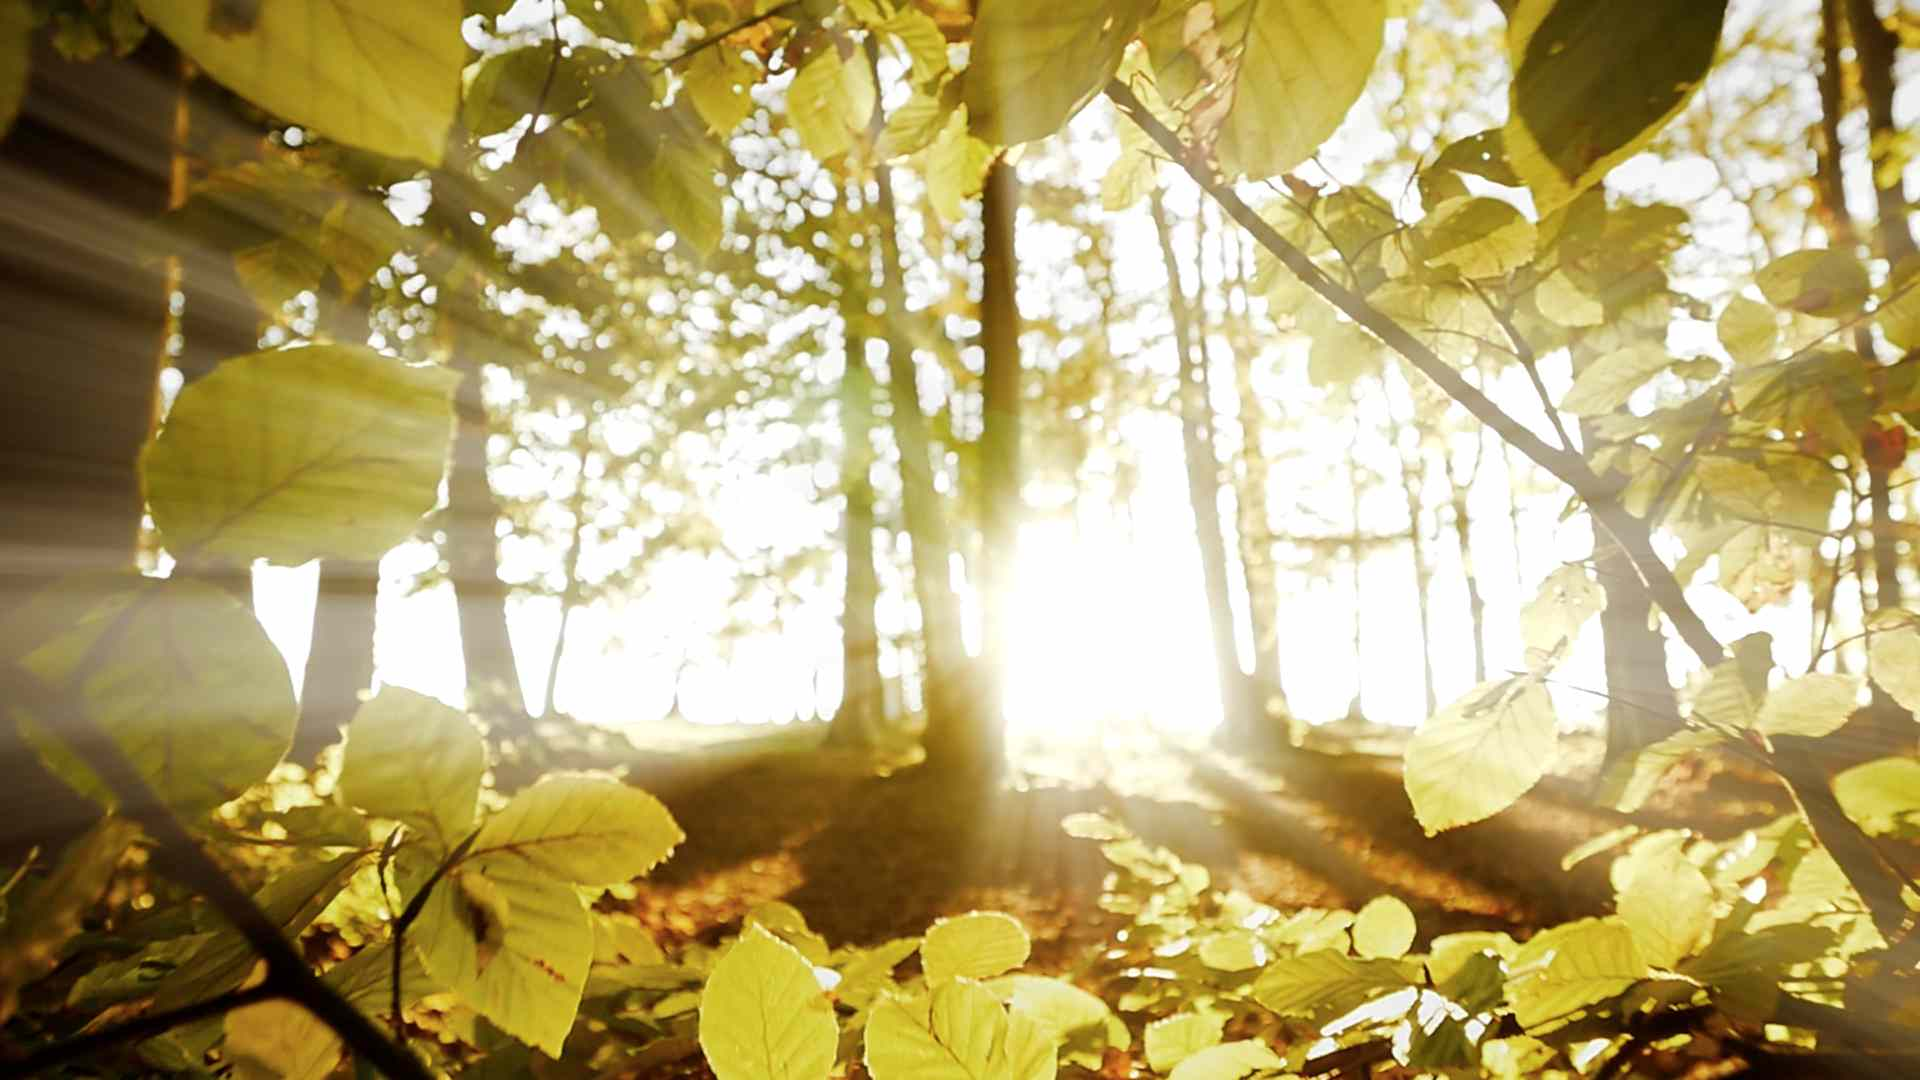 sun-light-shining-through-tree